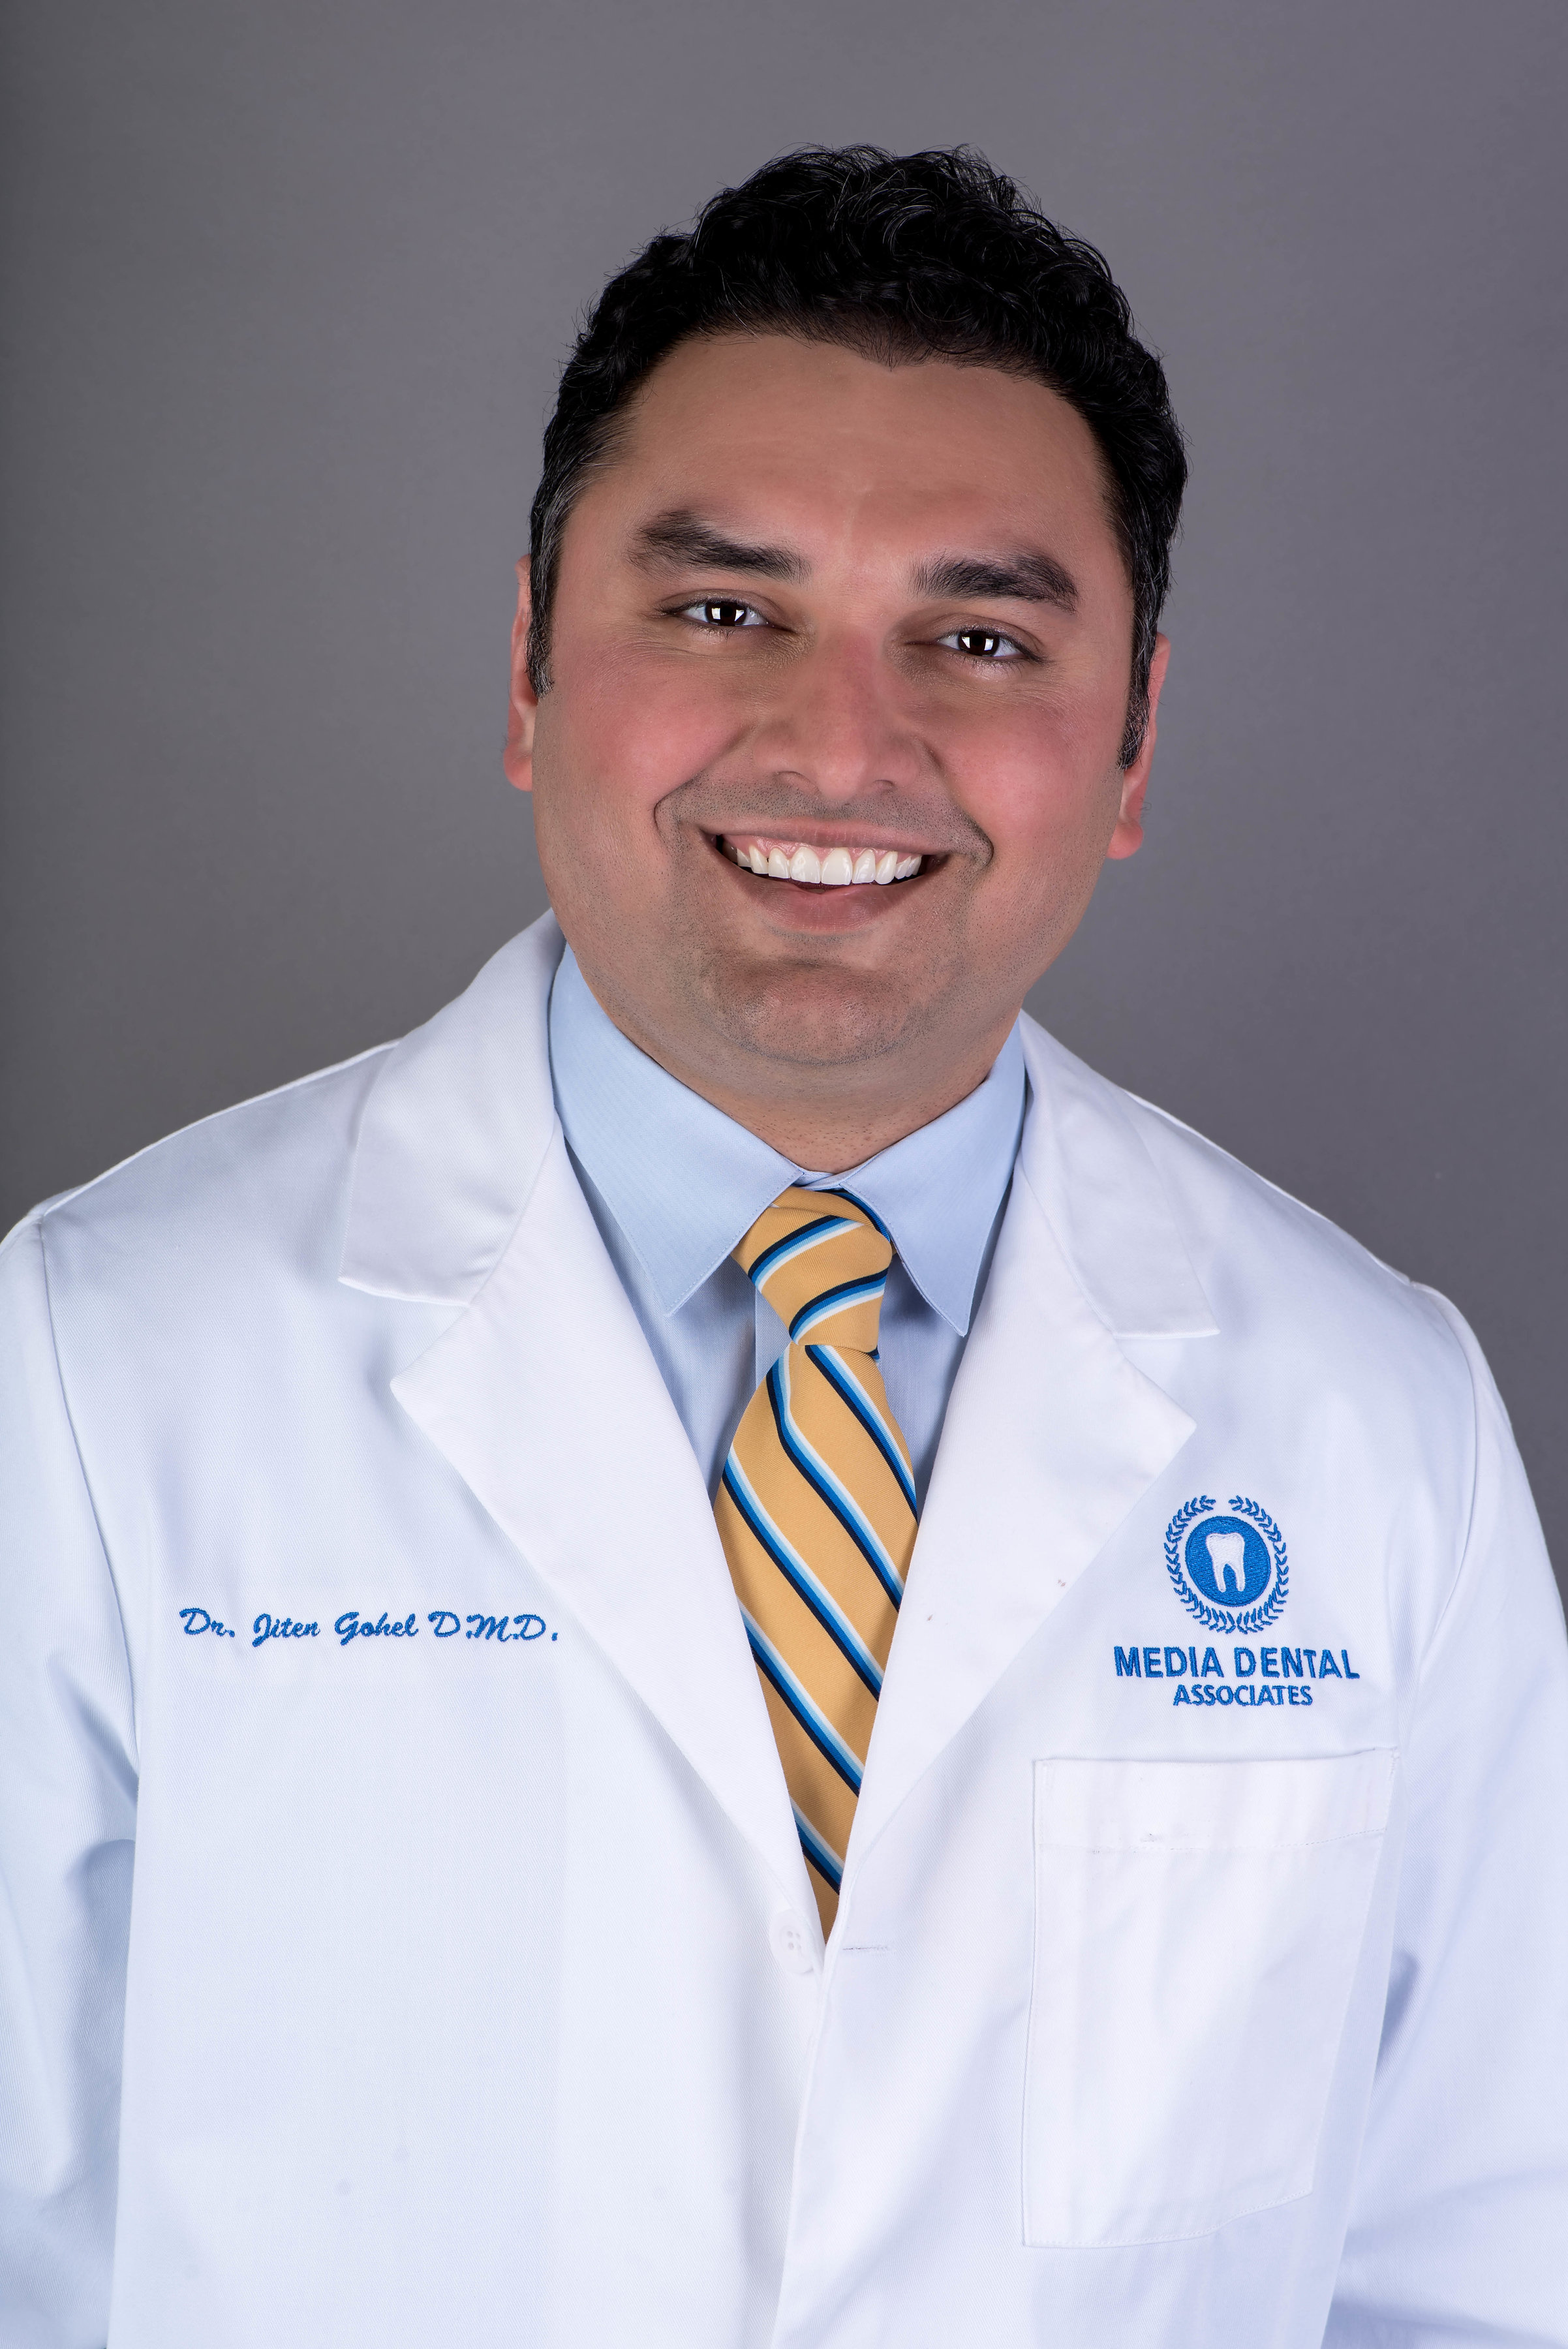 Meet Dr. Jay - Dr. Jiten P. Gohel (Dr. Jay), moved to Pennsylvania after graduating with High Honors from the Boston University Dental School. Upon graduation he was inducted into the Omicron Kappa Upsilon Honor Society and also received an award of Excellence from the Department of periodontology.